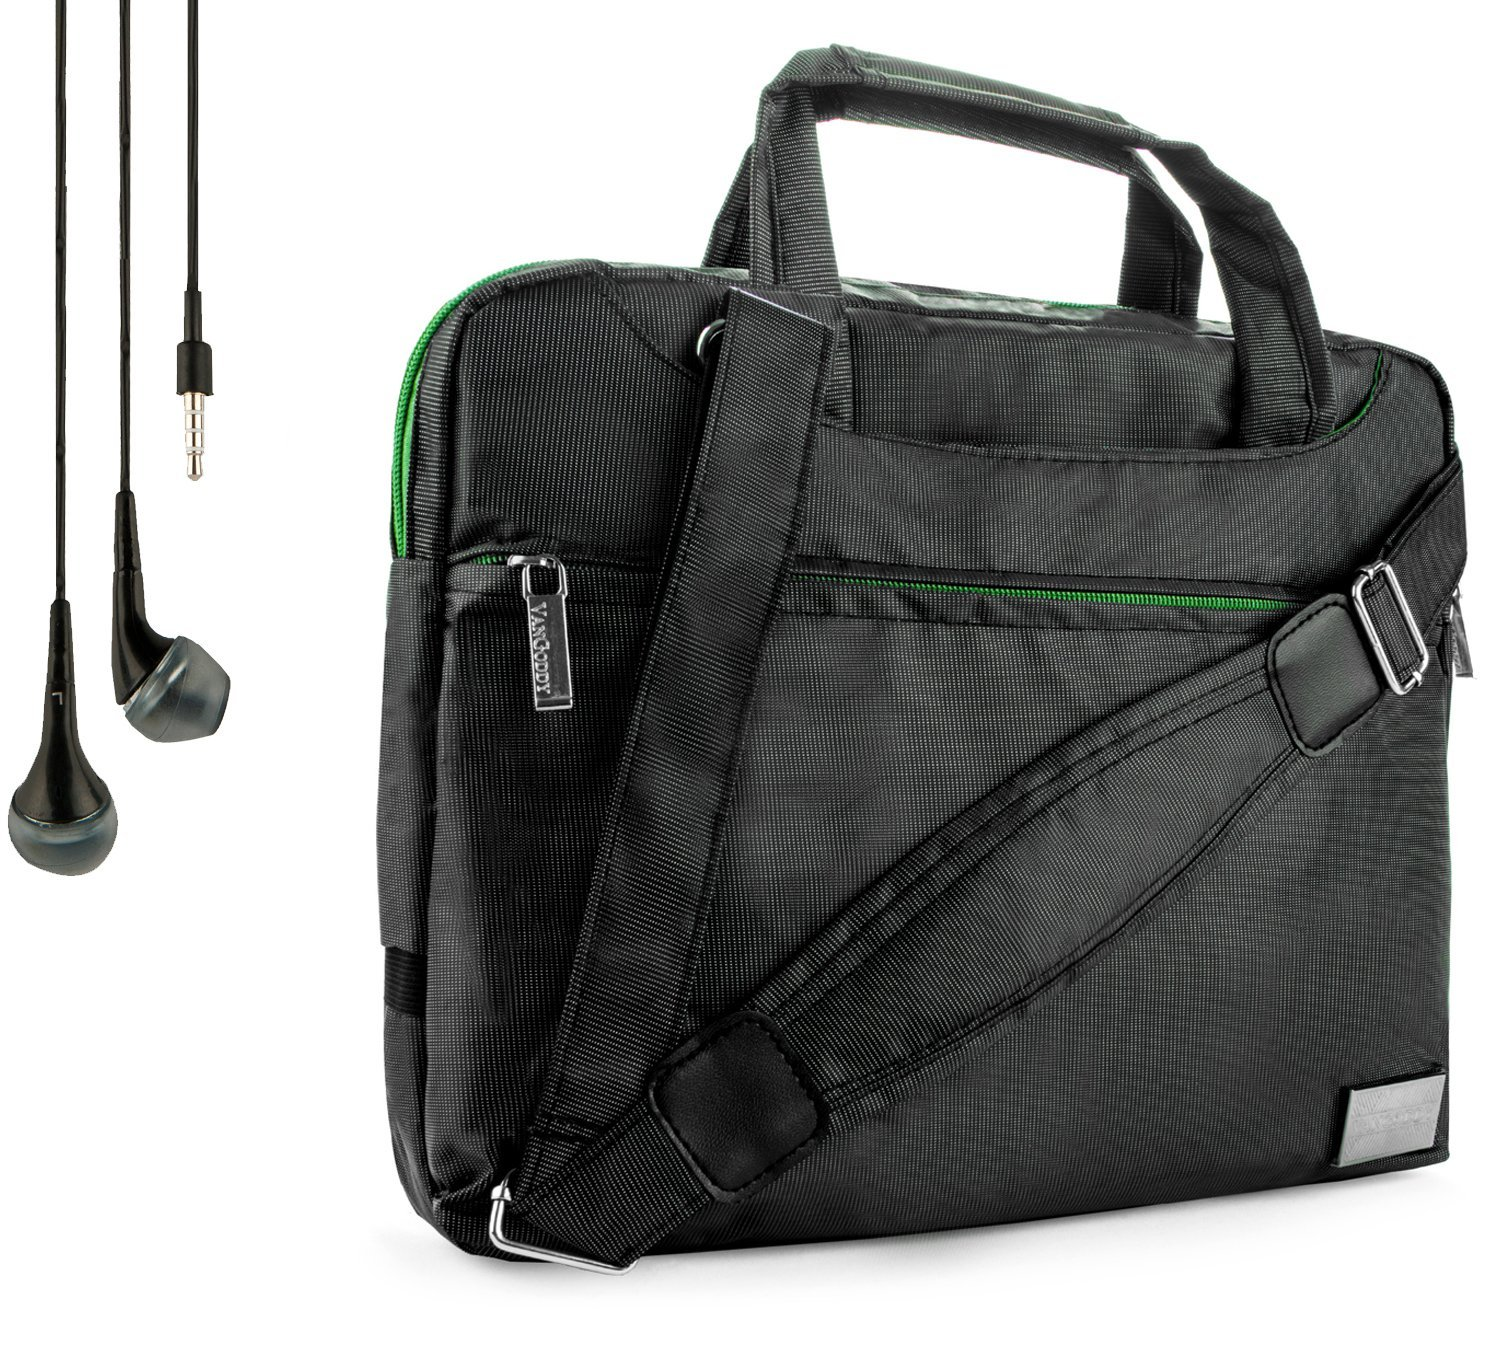 """NineO Sport Nylon Shoulder Bag Carrying Case For Kocaso Android Tablet PC 9"""" M9200 Capacitive + Handsfree Earphones"""